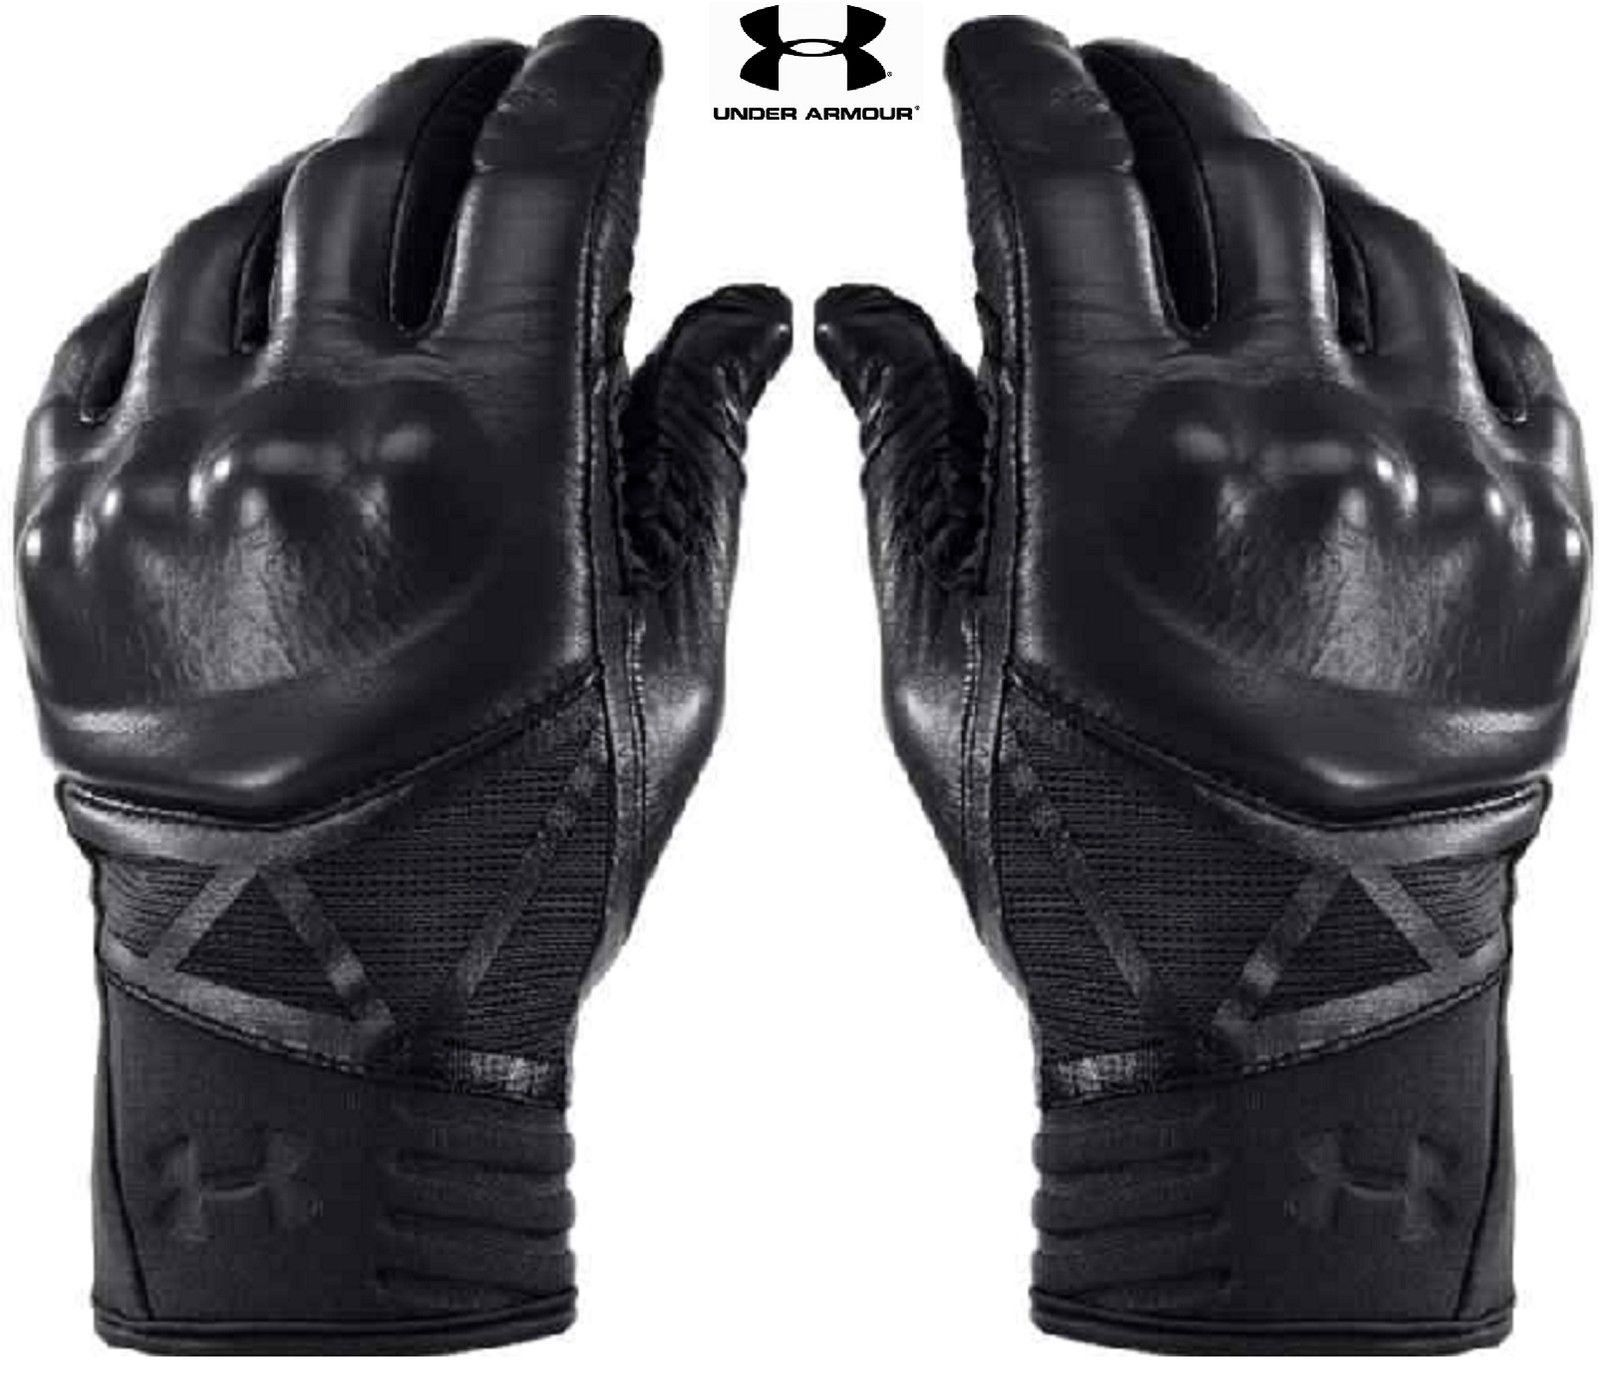 52b02f01f4e Black Under Armour Hard Knuckle Tactical Glove - UA TAC Performance Gloves